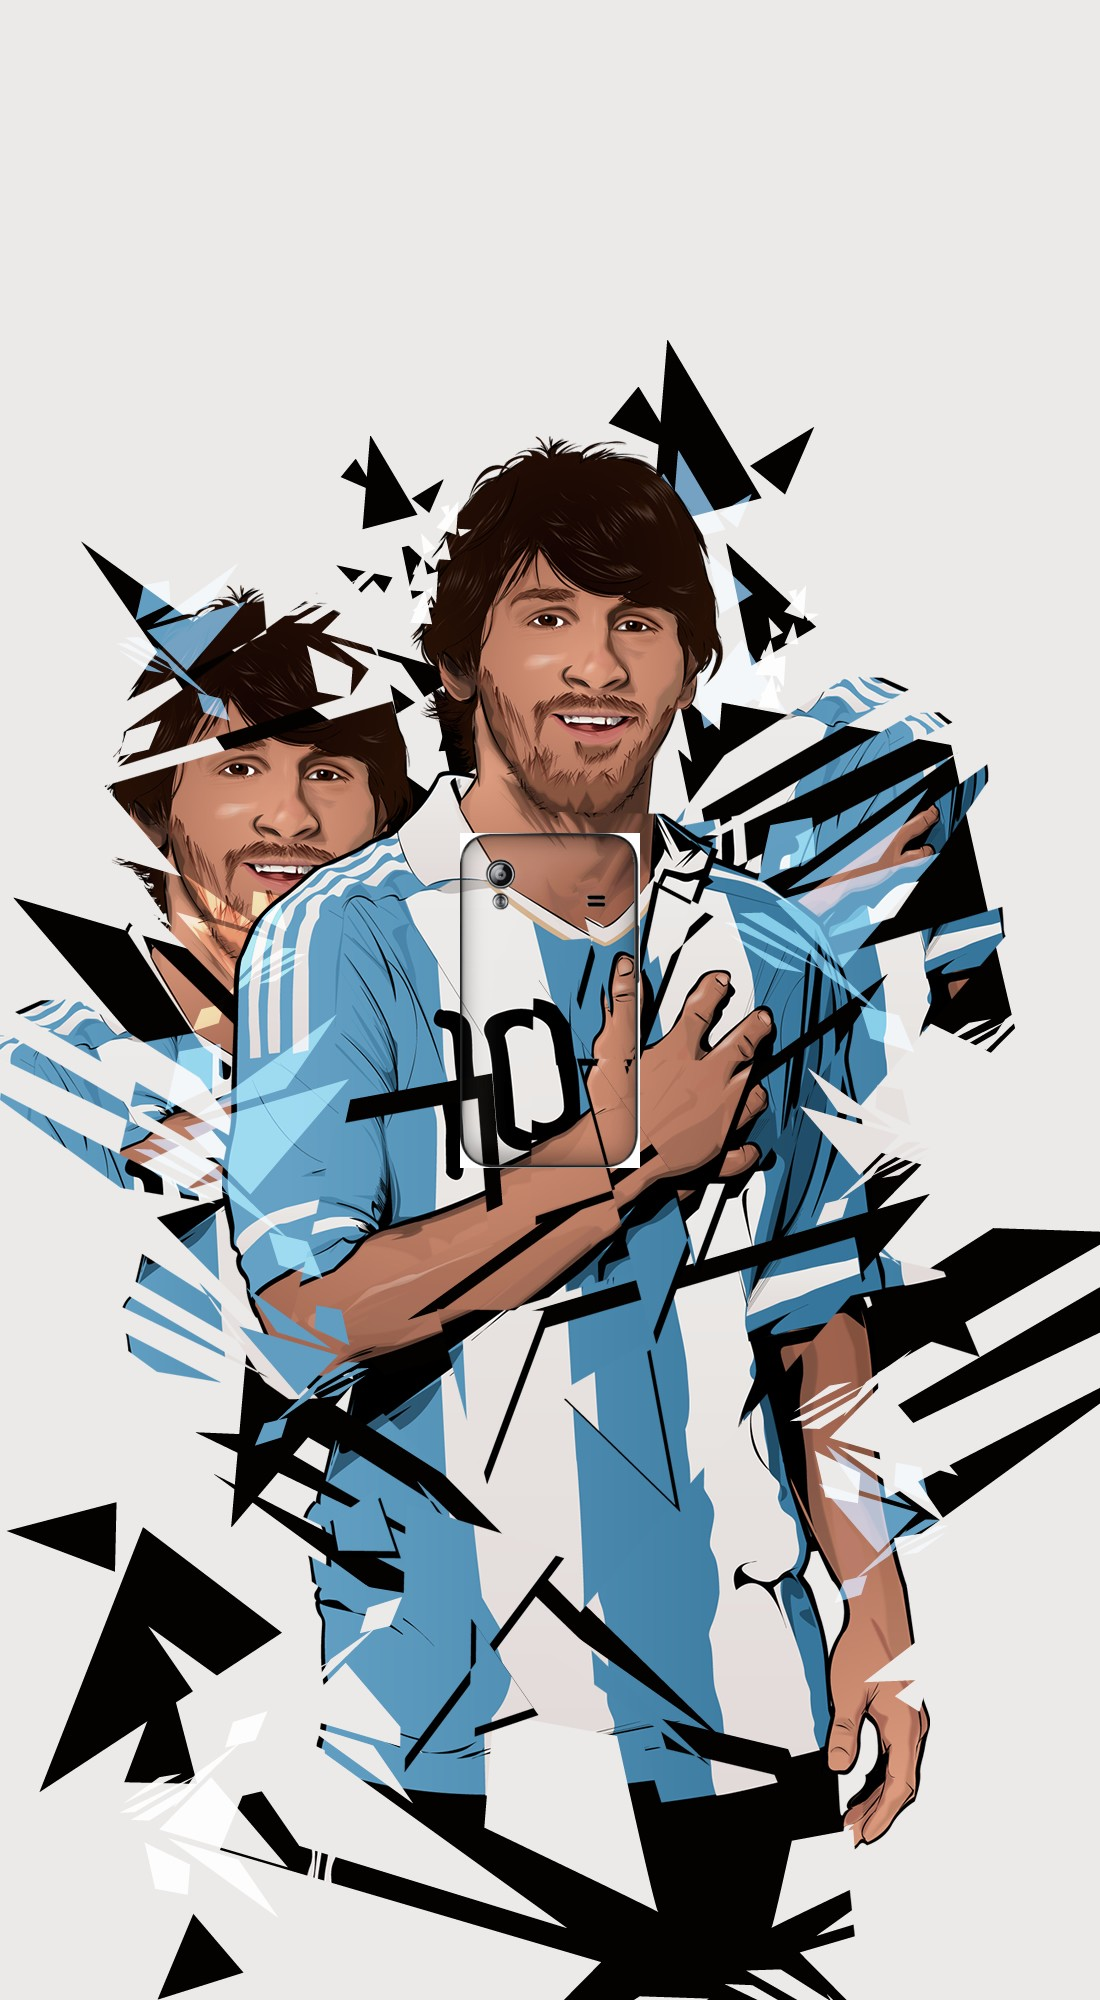 housse Football Legends: Lionel Messi Argentina a clapet pour Samsung Galaxy Ace S5830